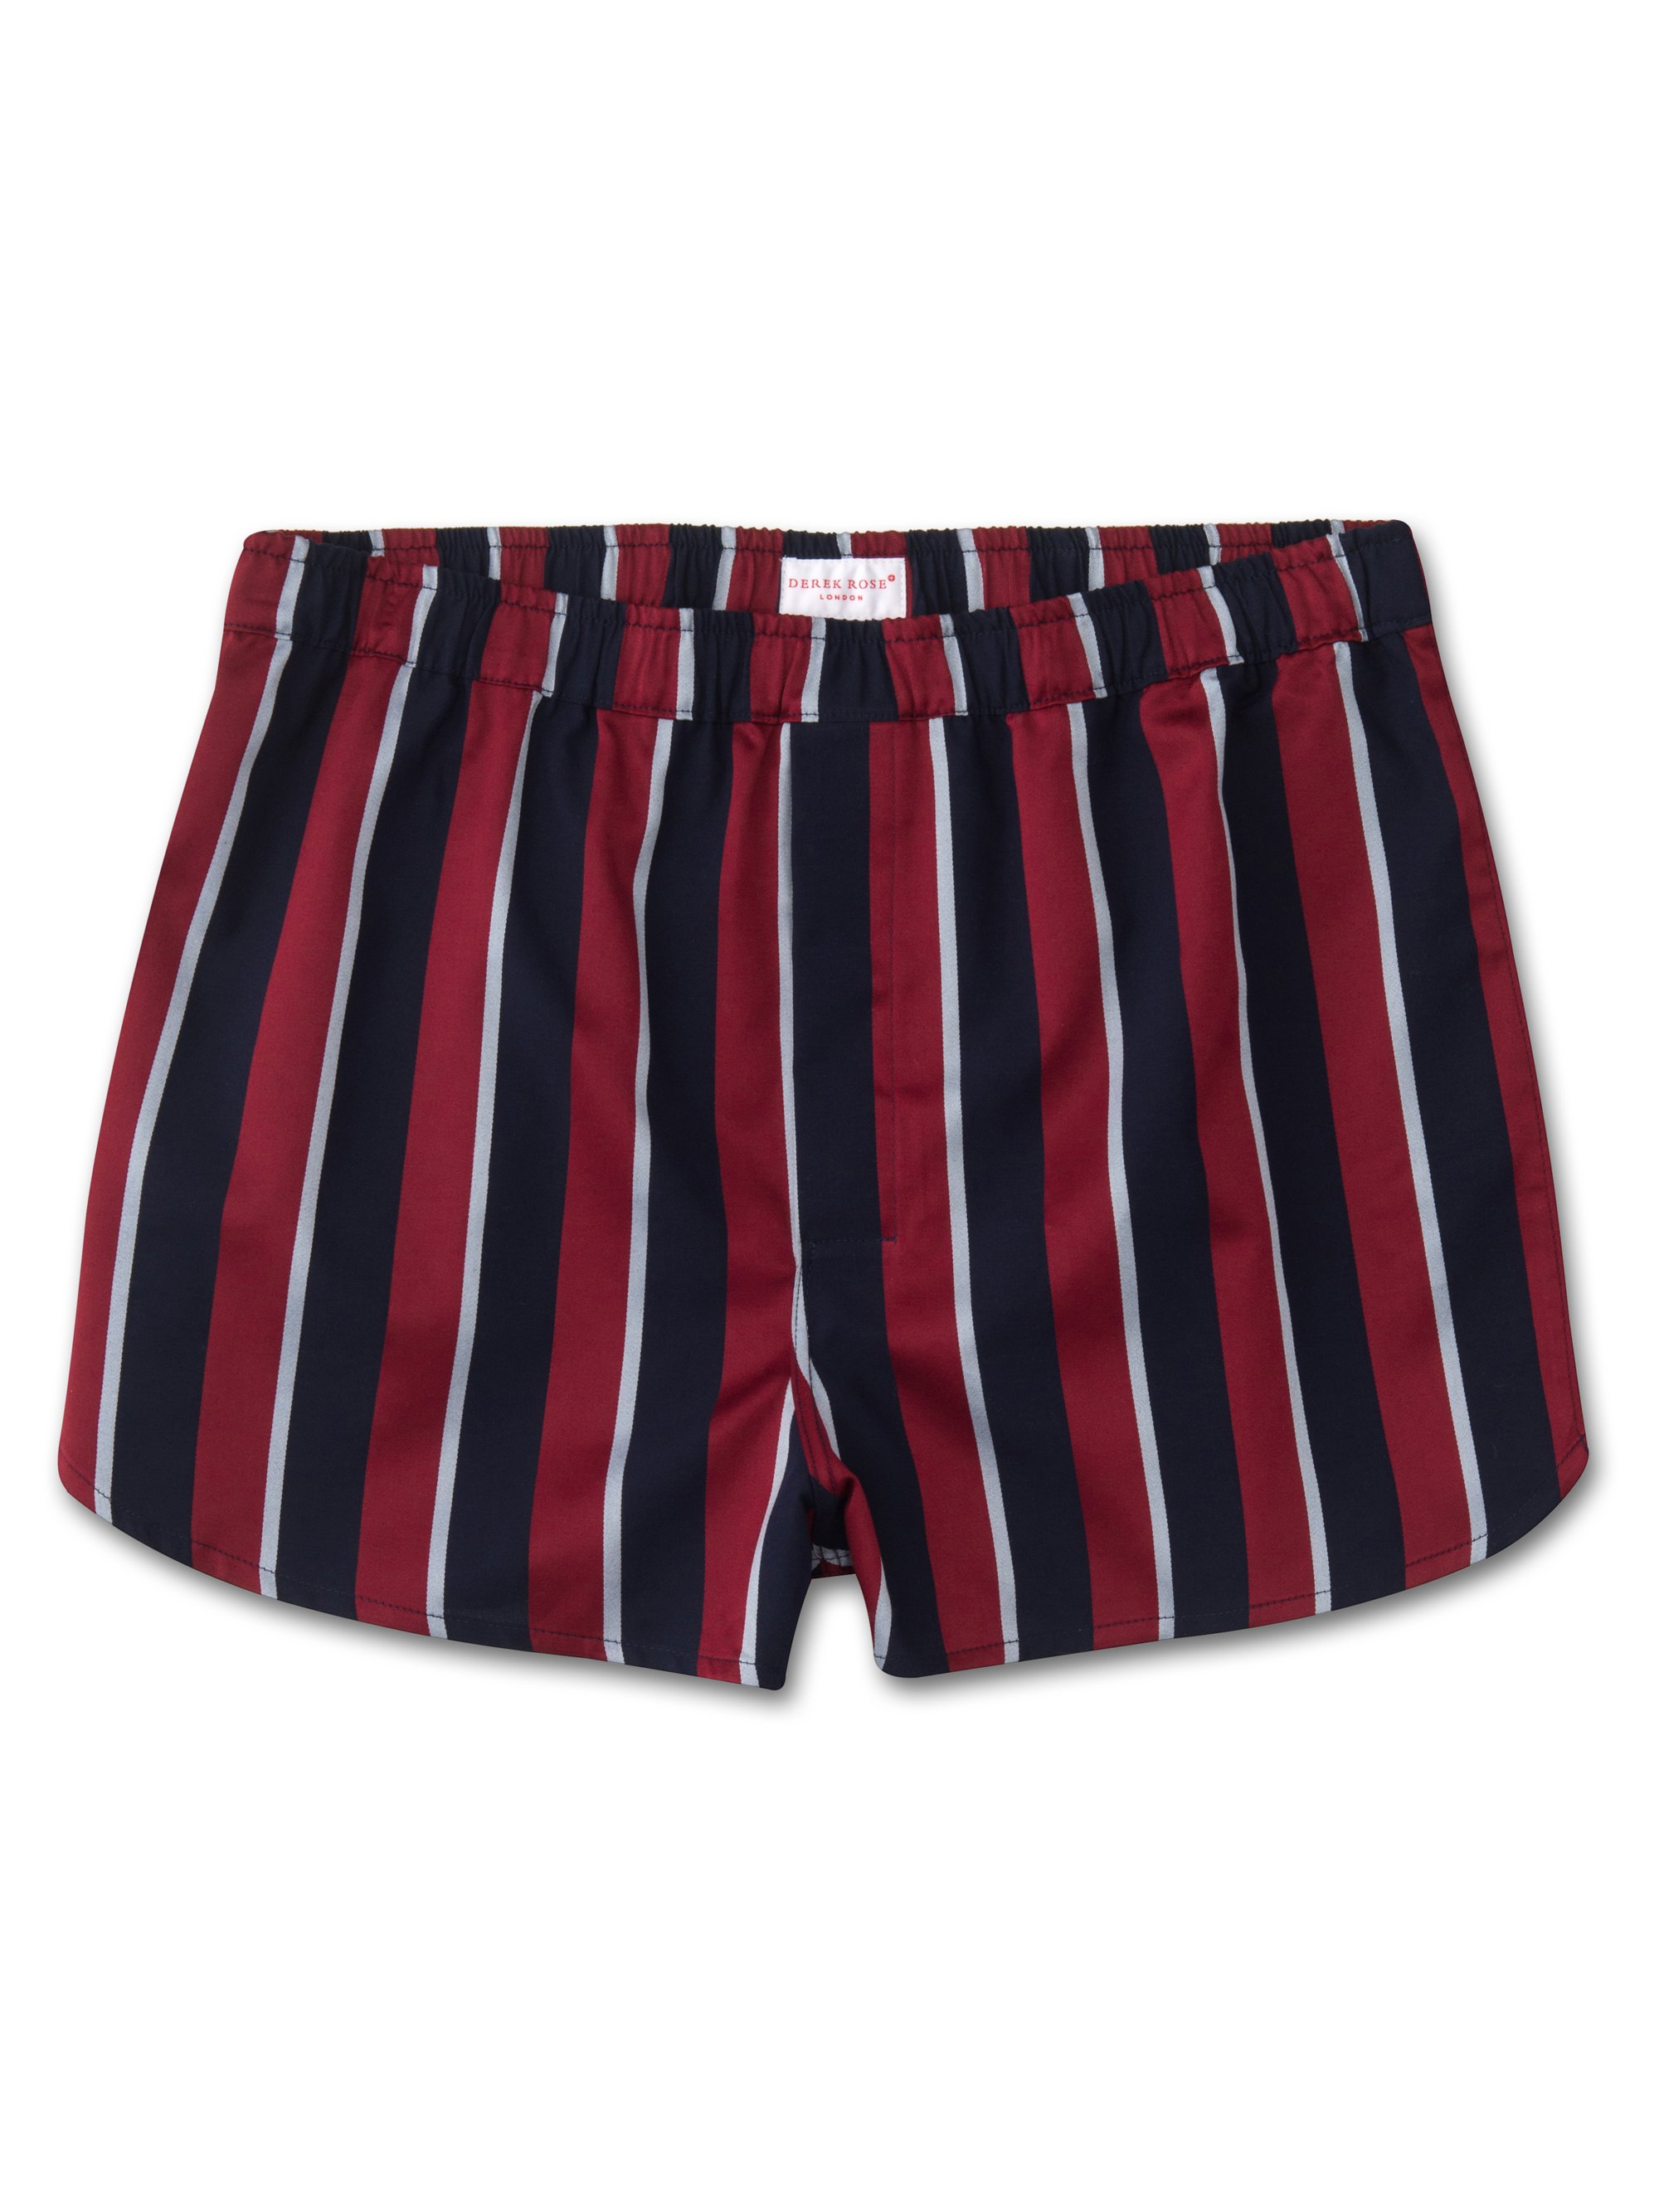 Men's Modern Fit Boxer Shorts Pure Cotton Satin Stripe Regimental RAF